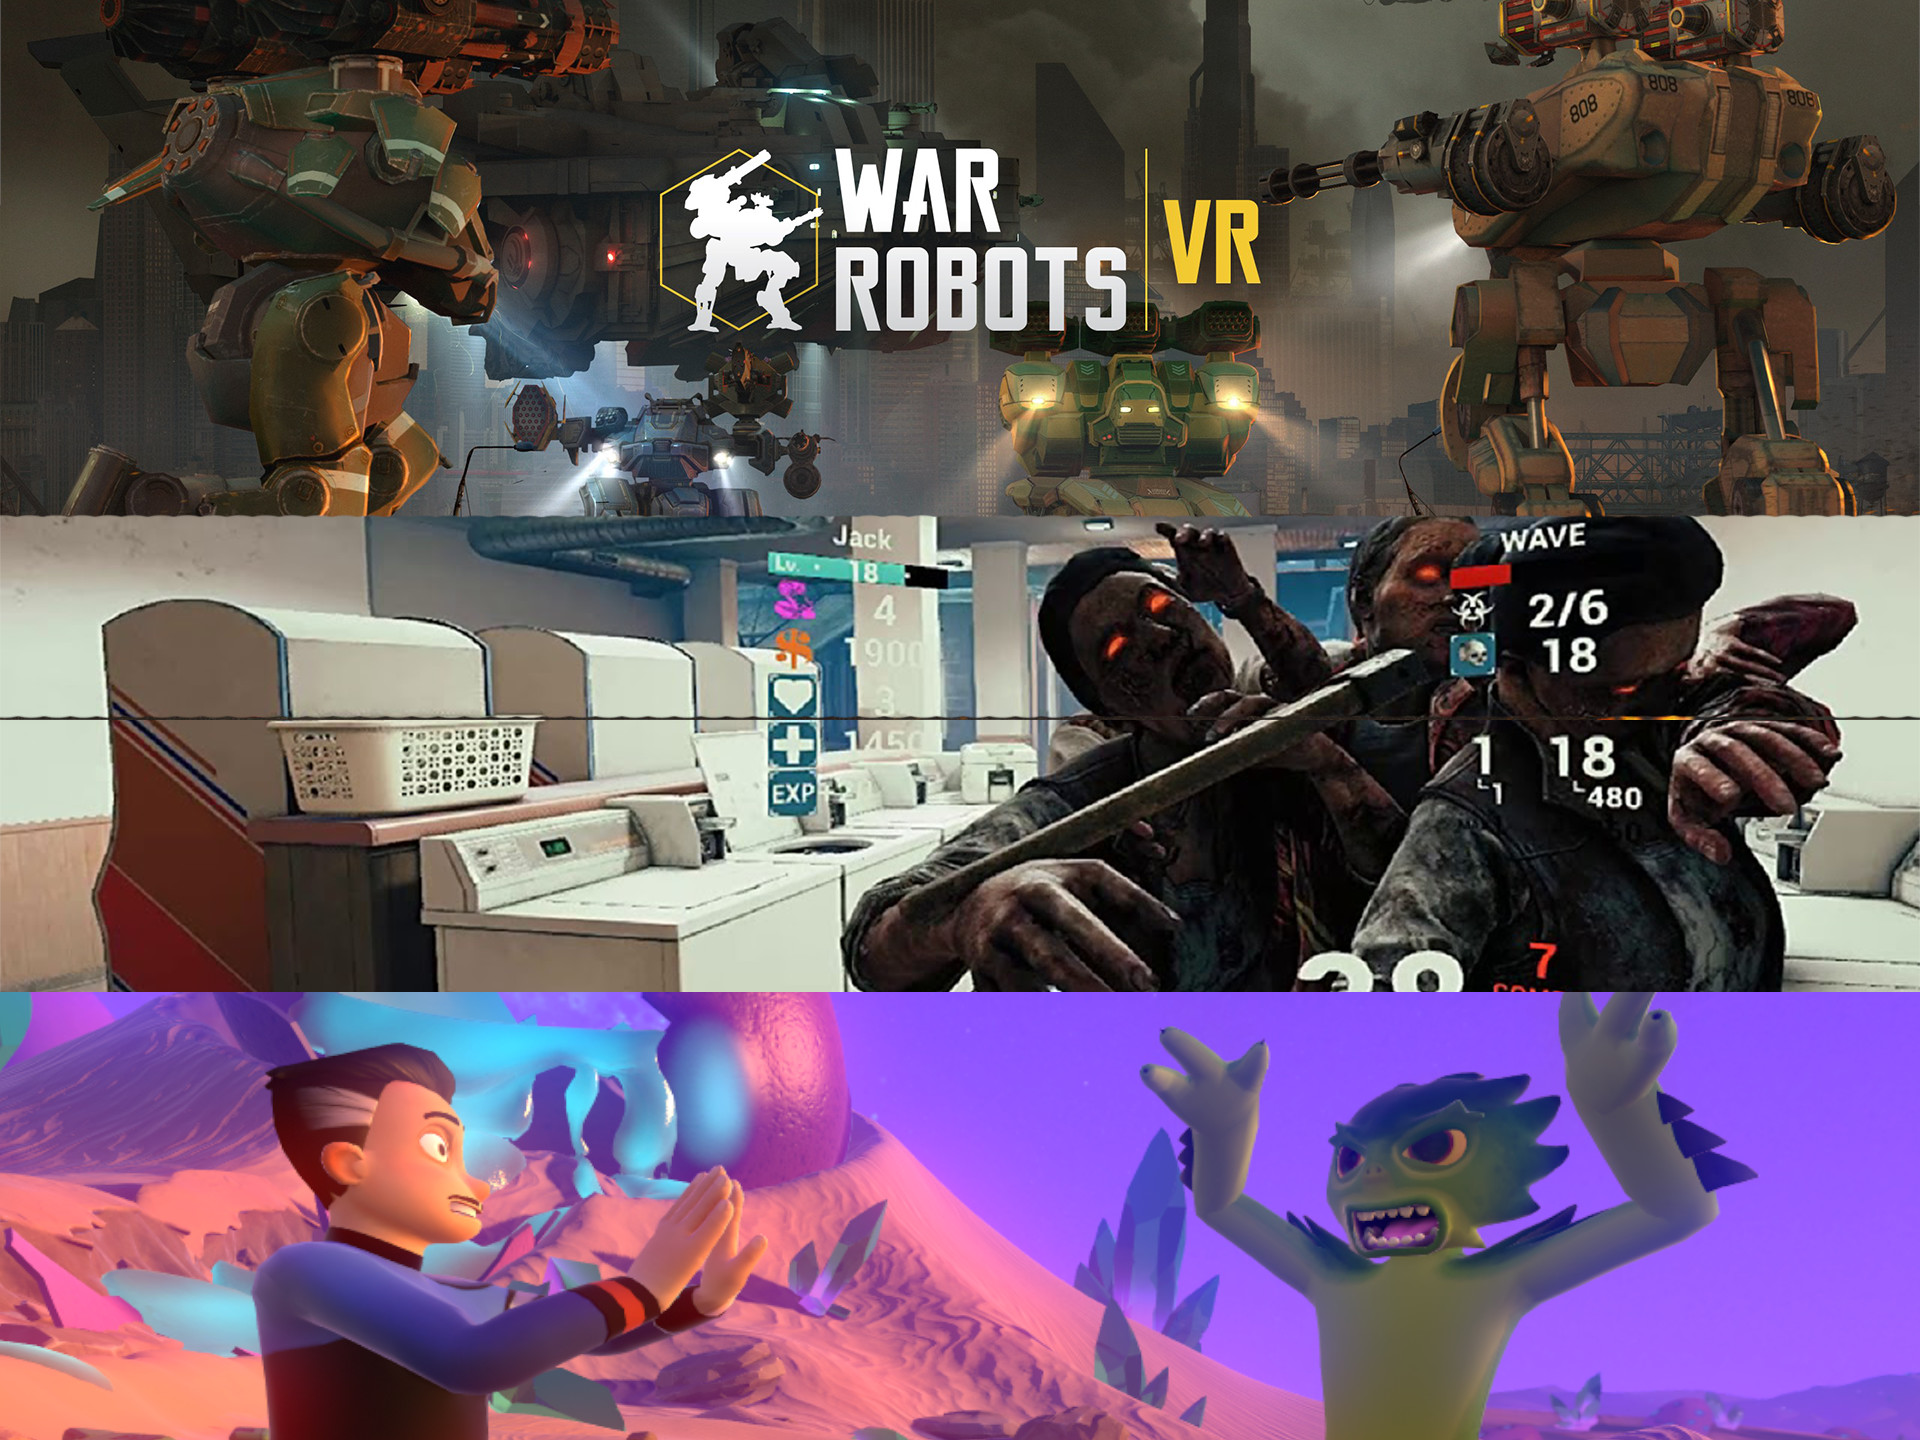 Most Positive Rated VR Games In The Last 30 Days